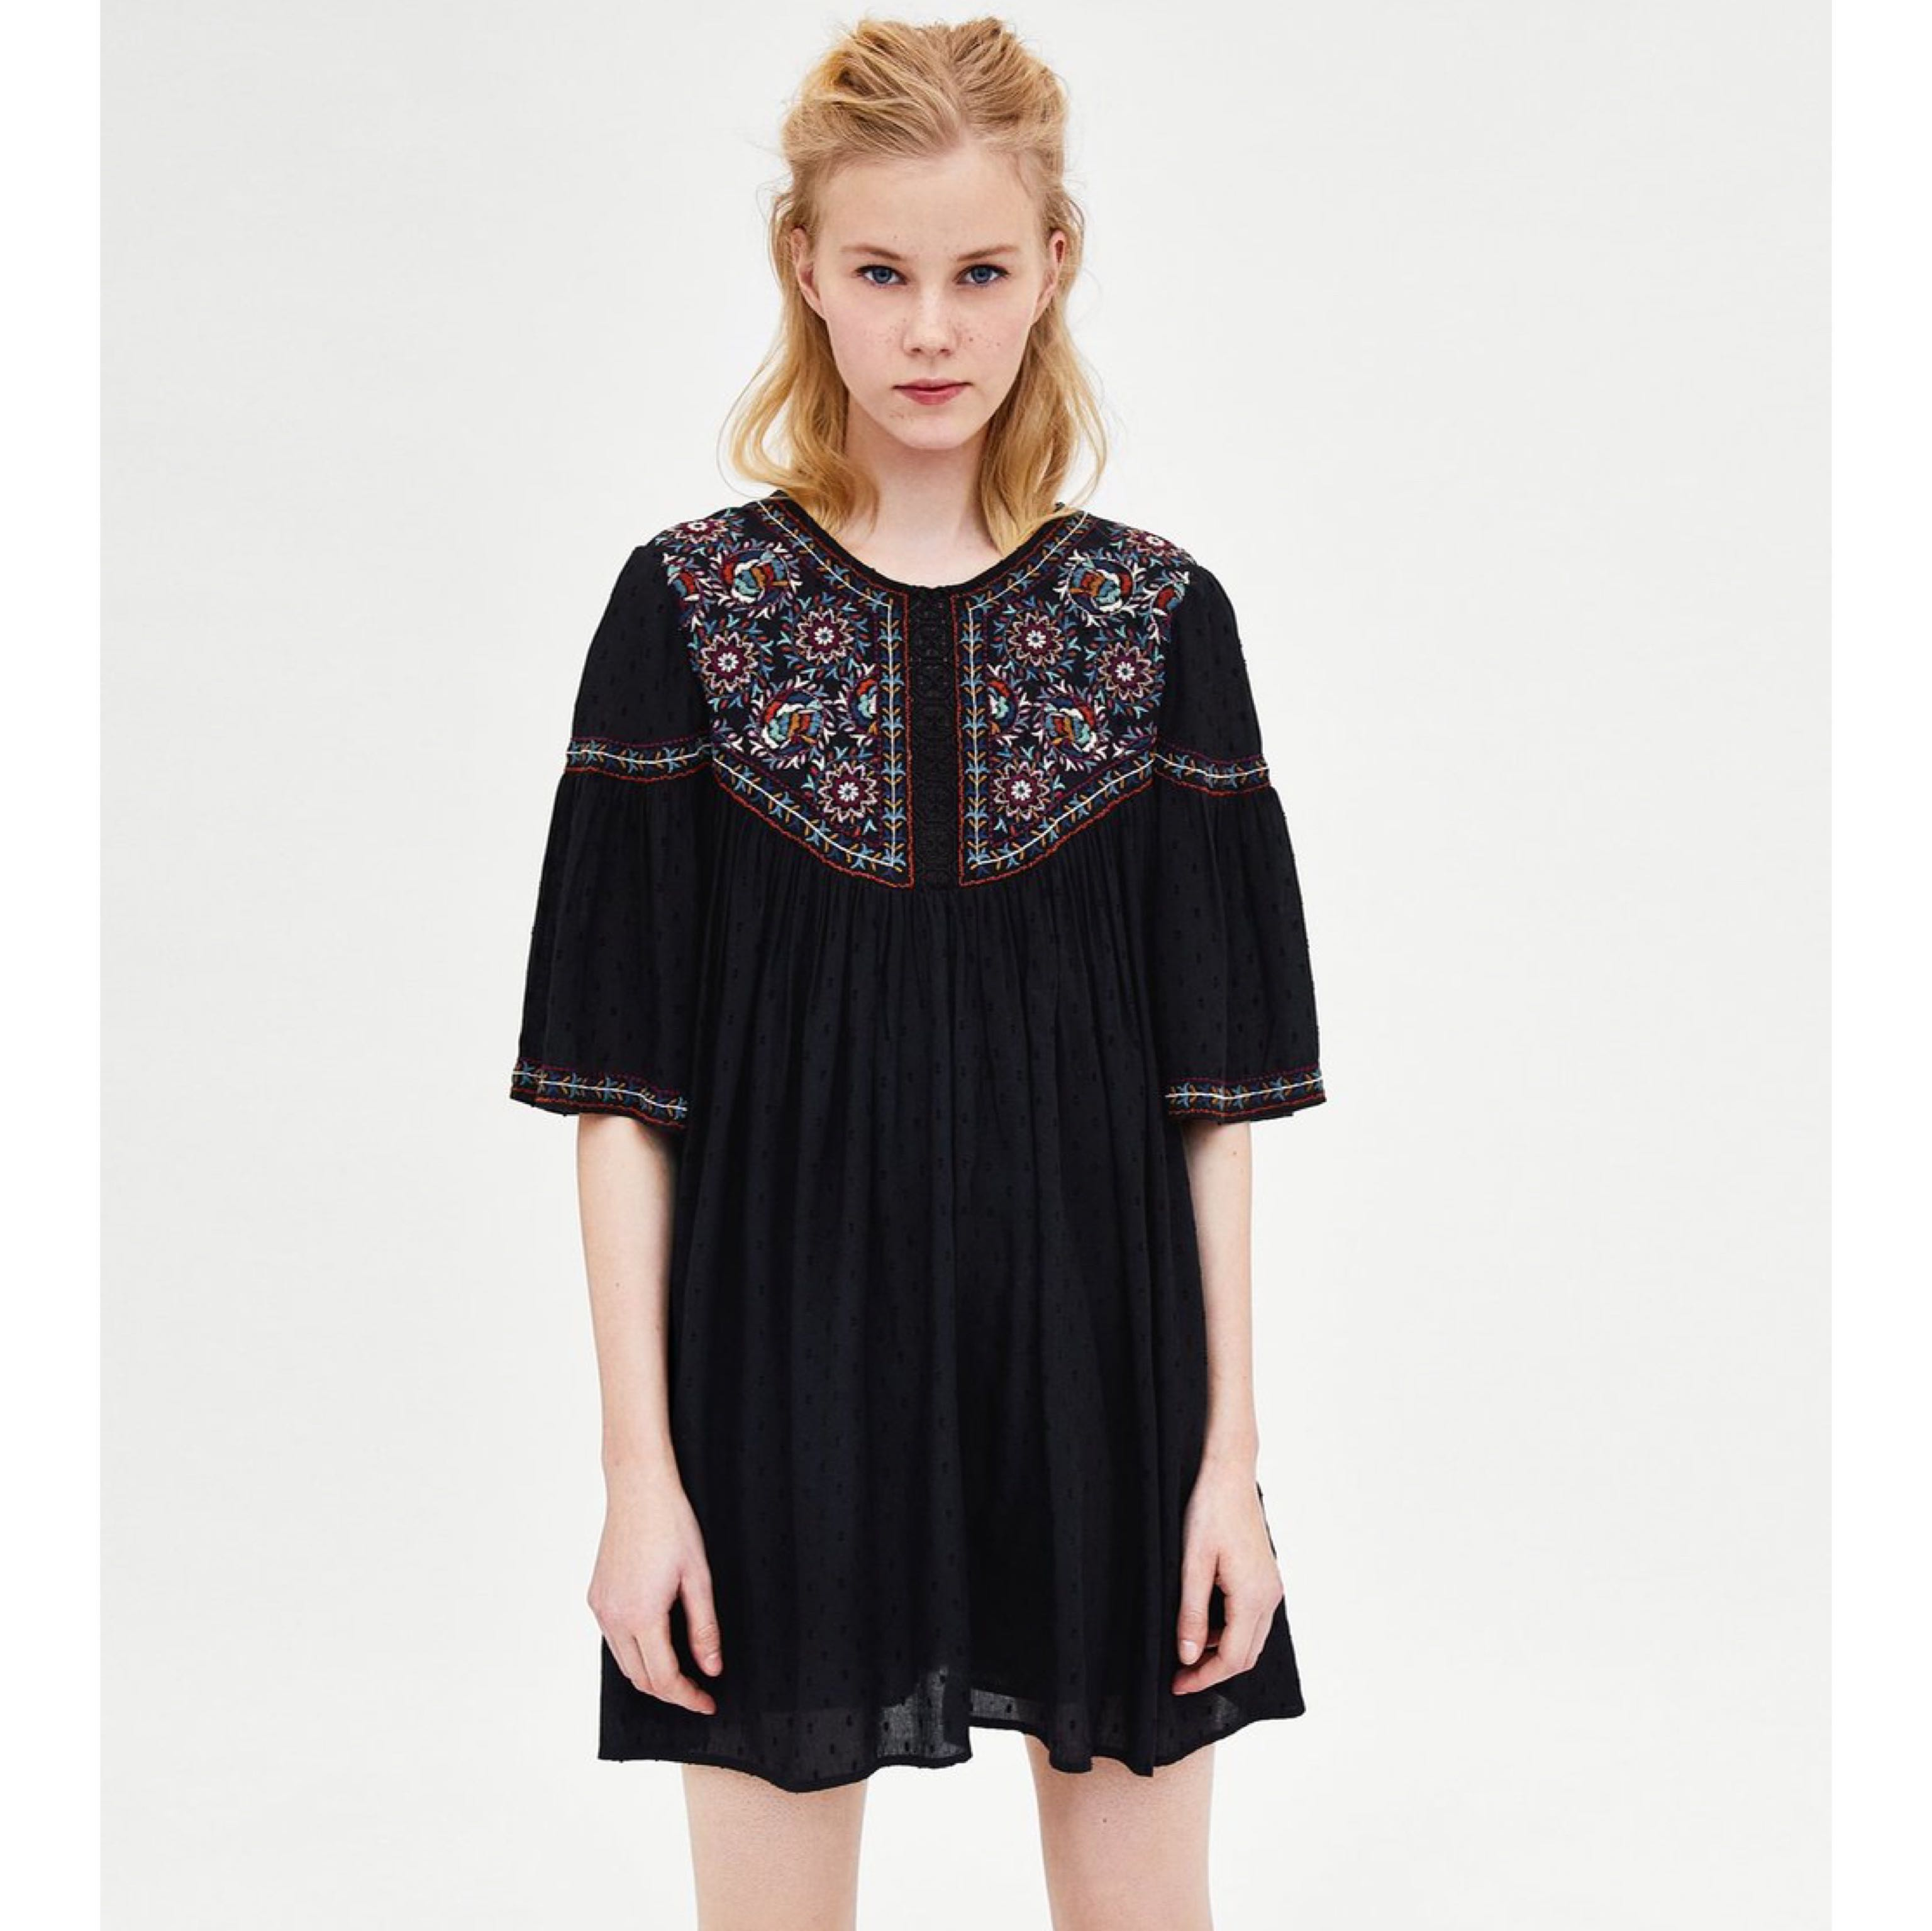 61f0832c (BN) 💯 Authentic Zara Black Plumetis Embroidered Romper Dress, Women's  Fashion, Clothes, Dresses & Skirts on Carousell